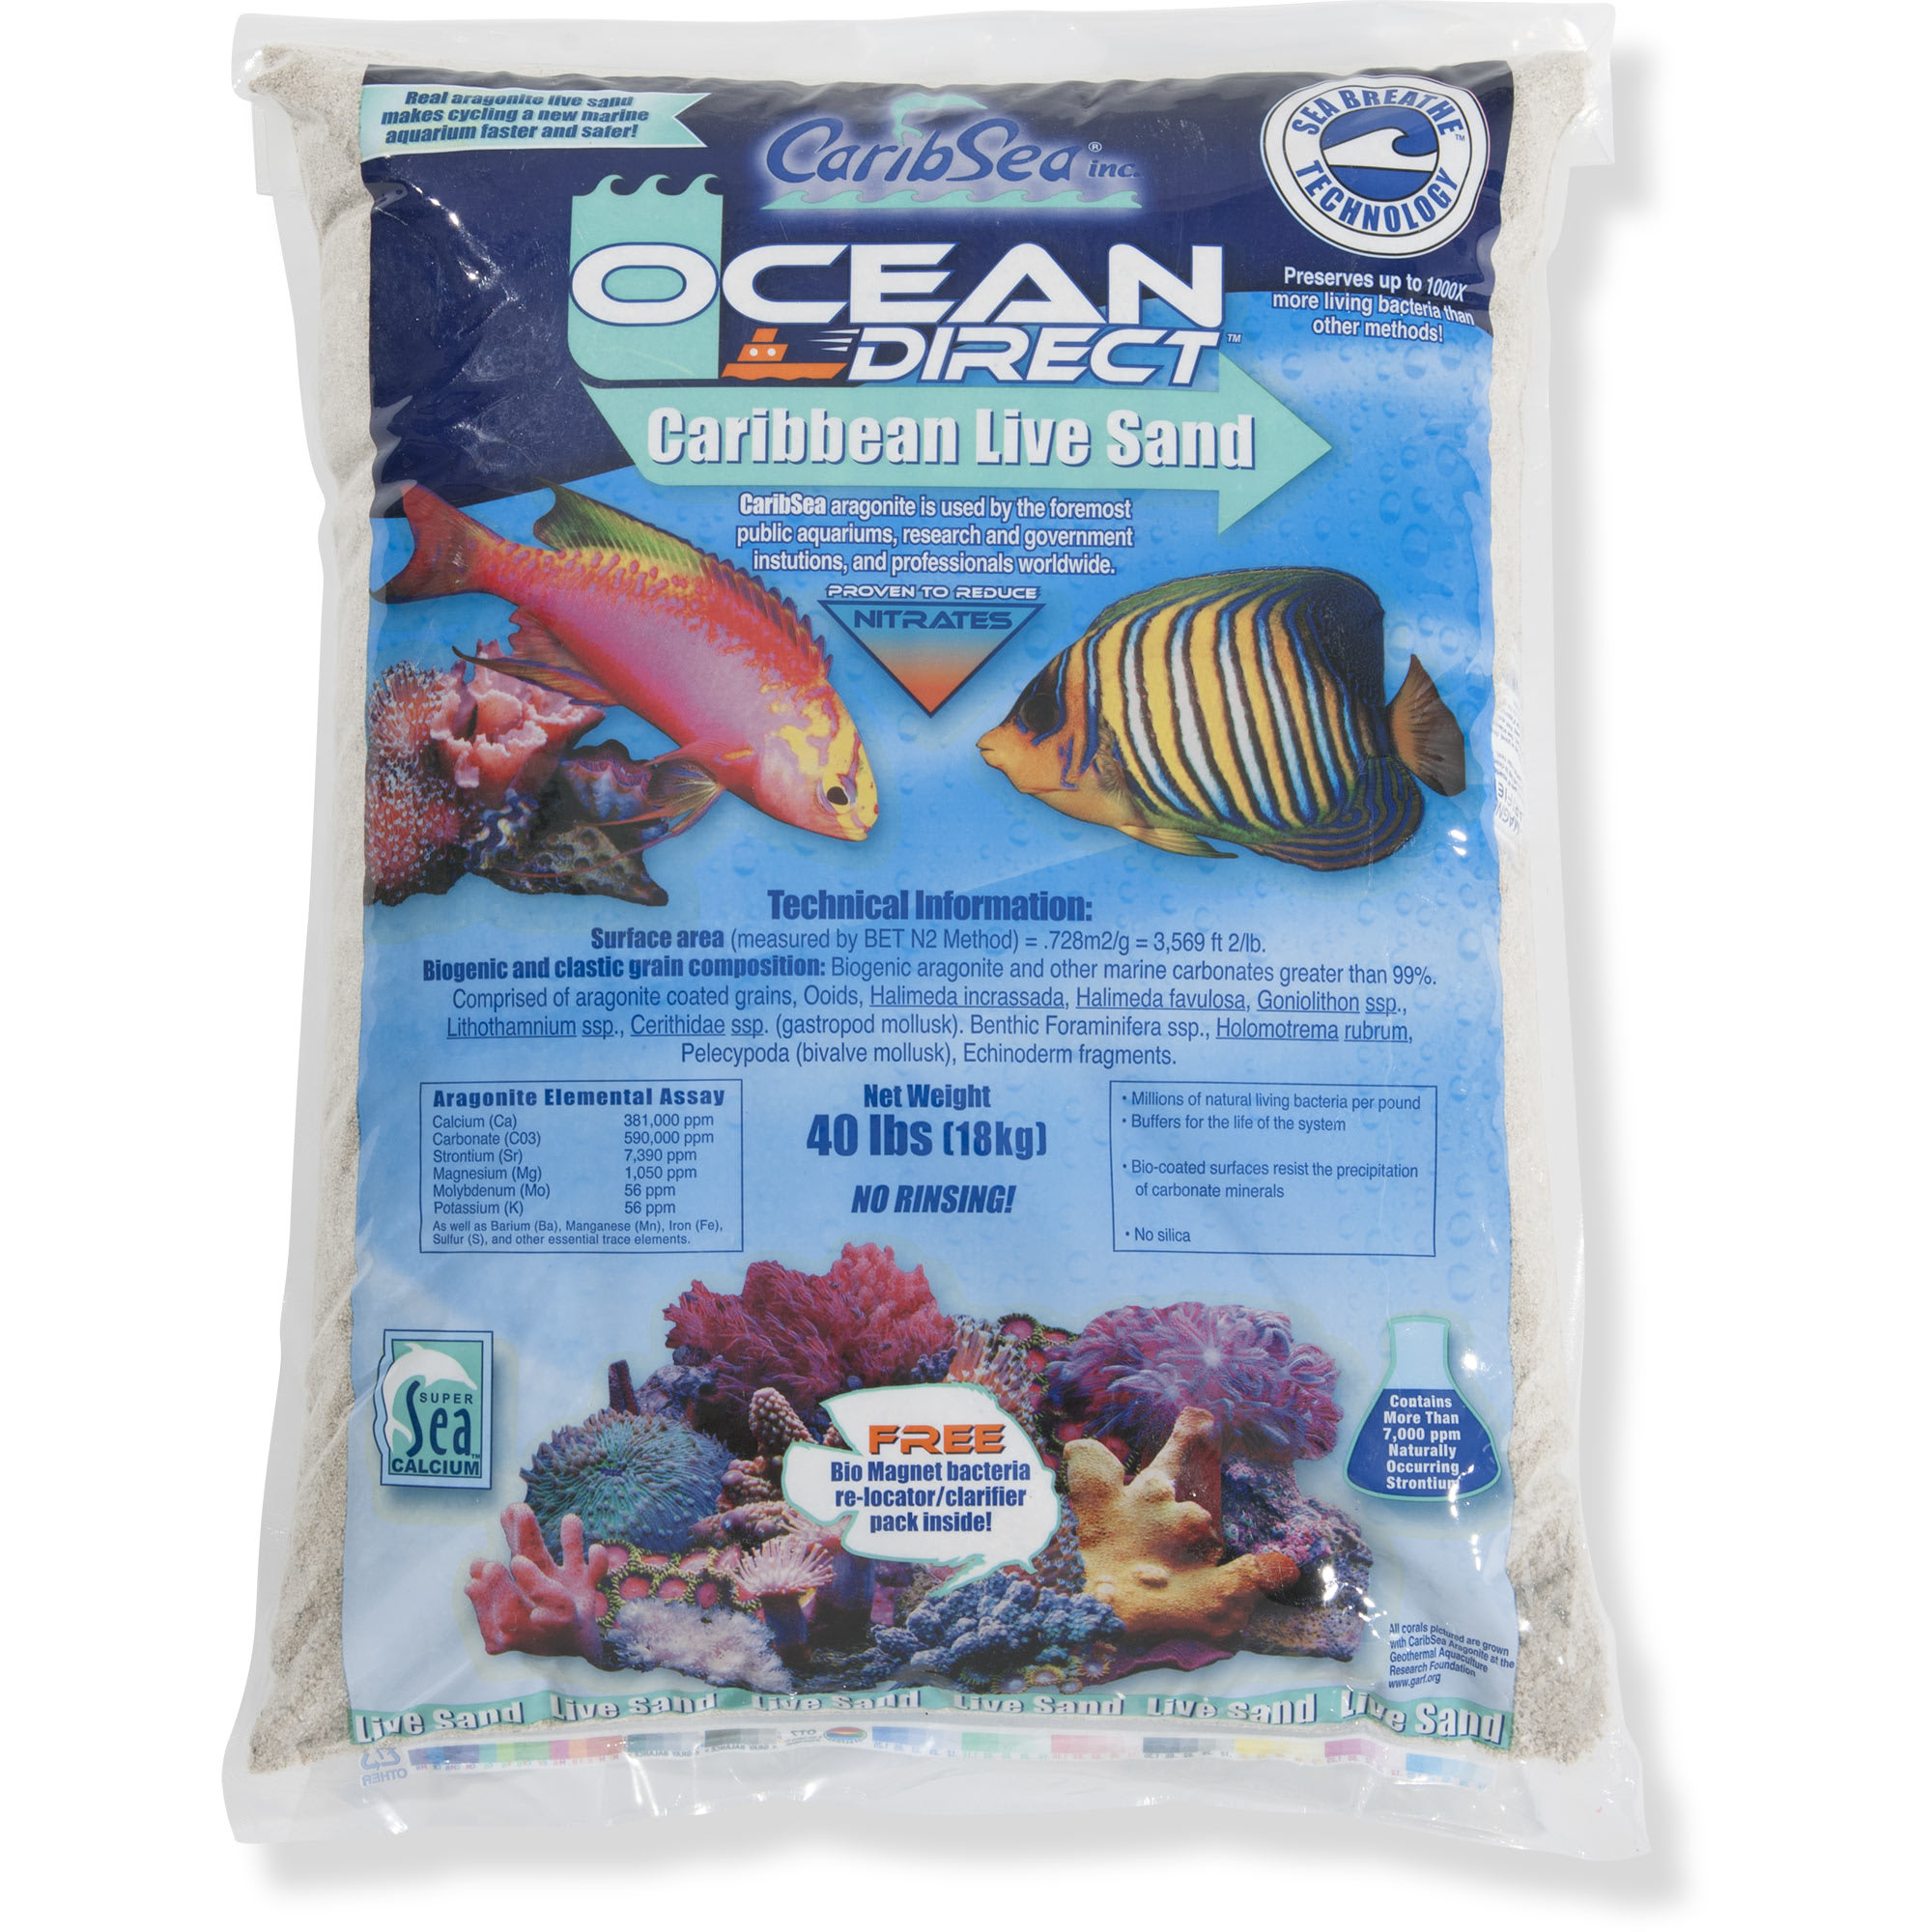 Caribbean Live Sand Substrate